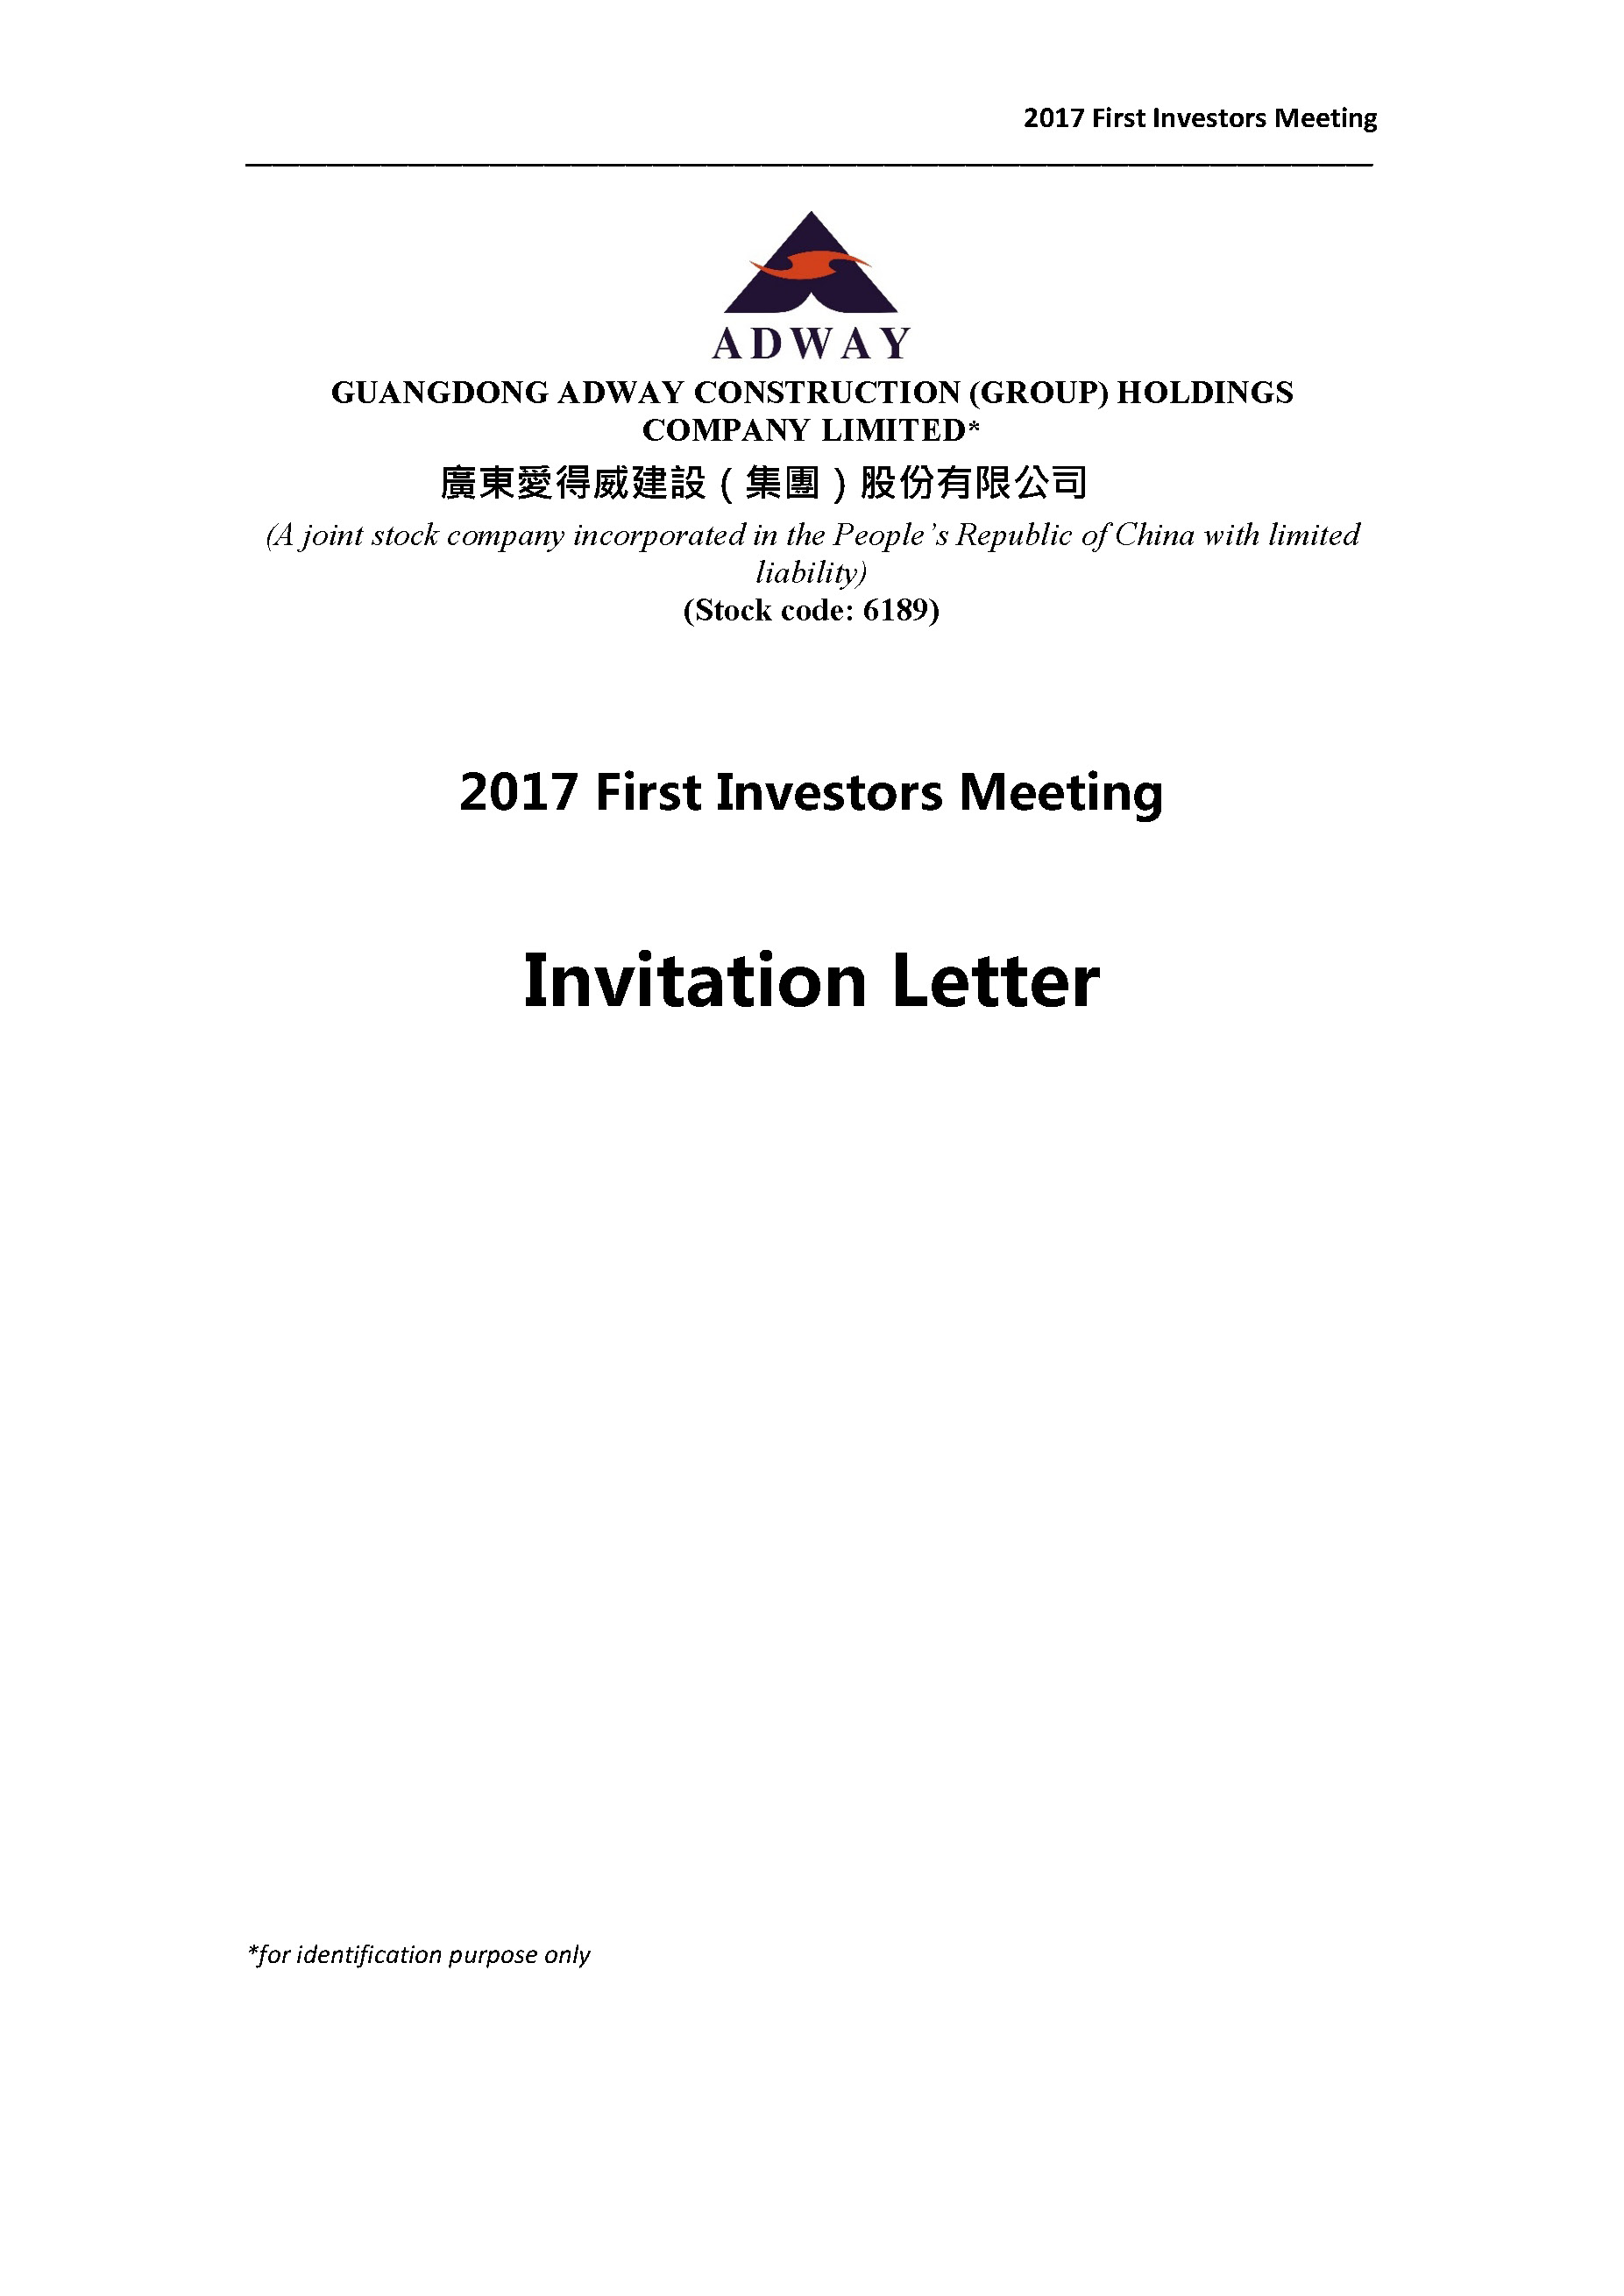 2017 First Investors Meeting Invitation Letter